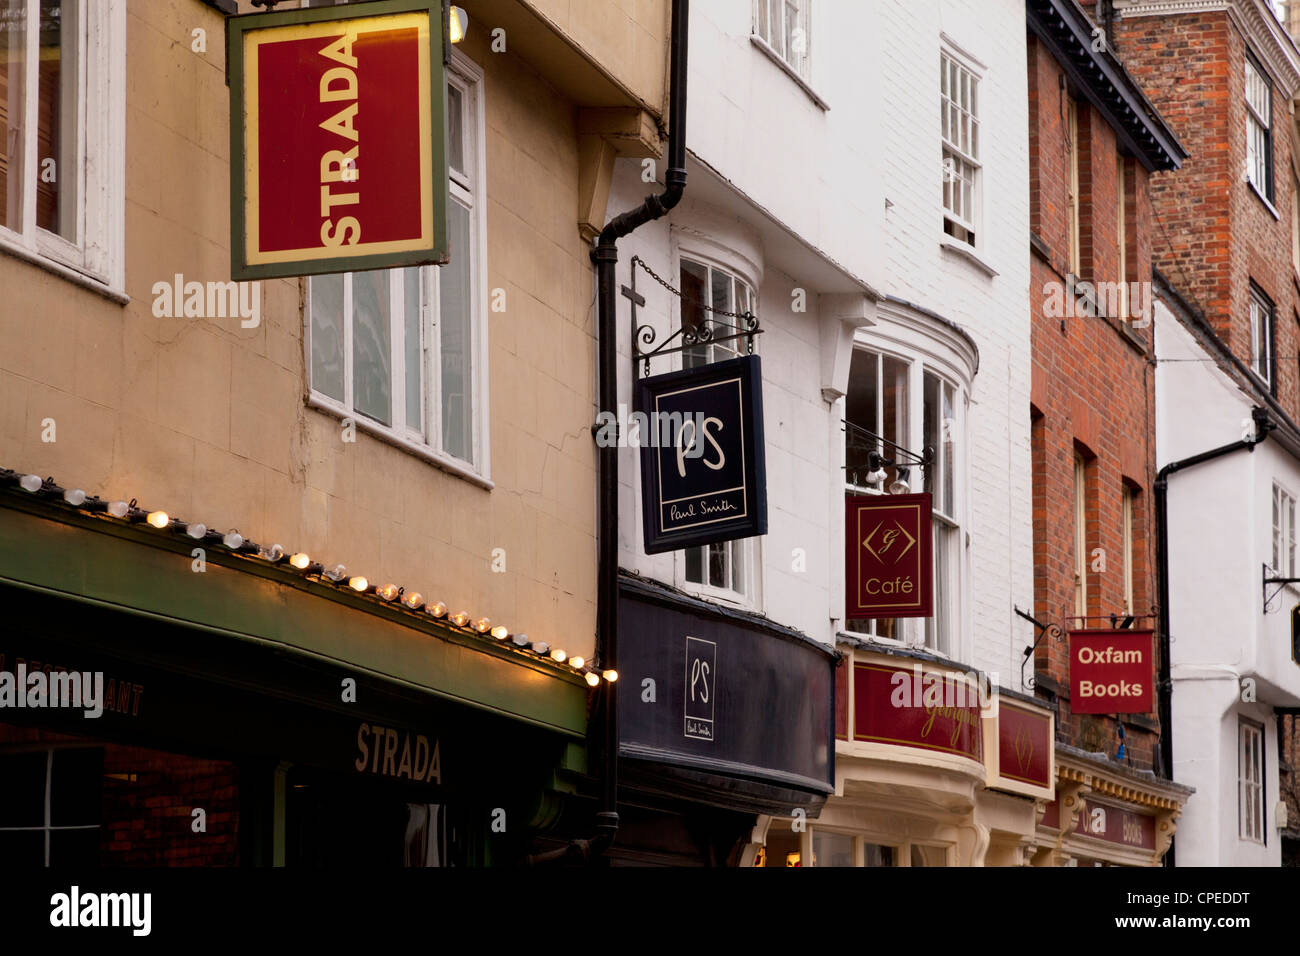 Shops and restaurants in Low Petergate, York, England. - Stock Image